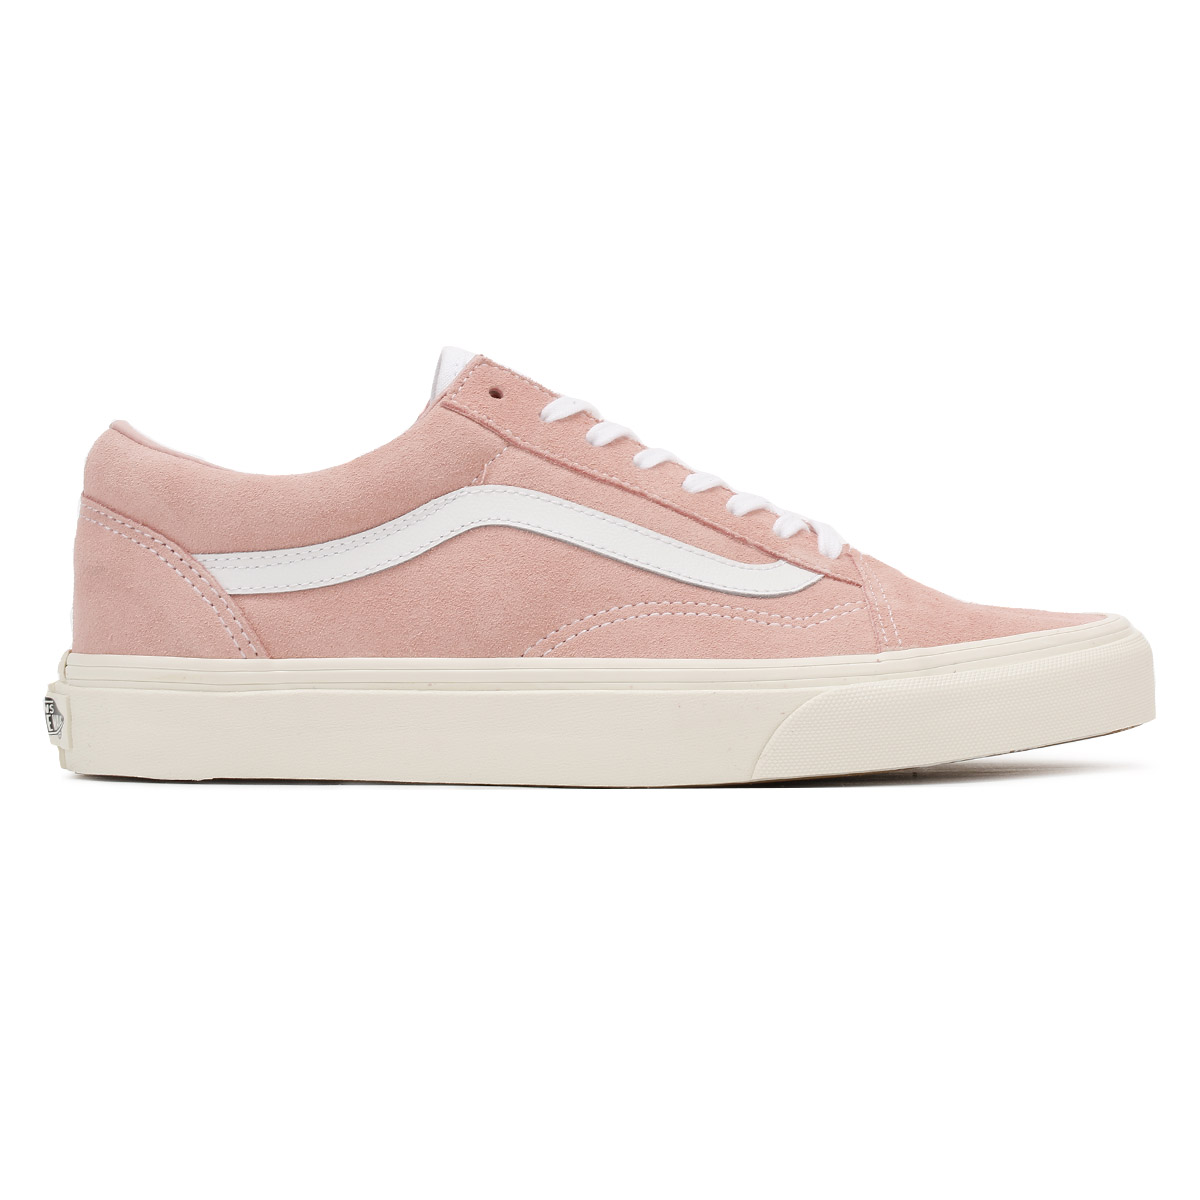 Image result for pink old skool vans